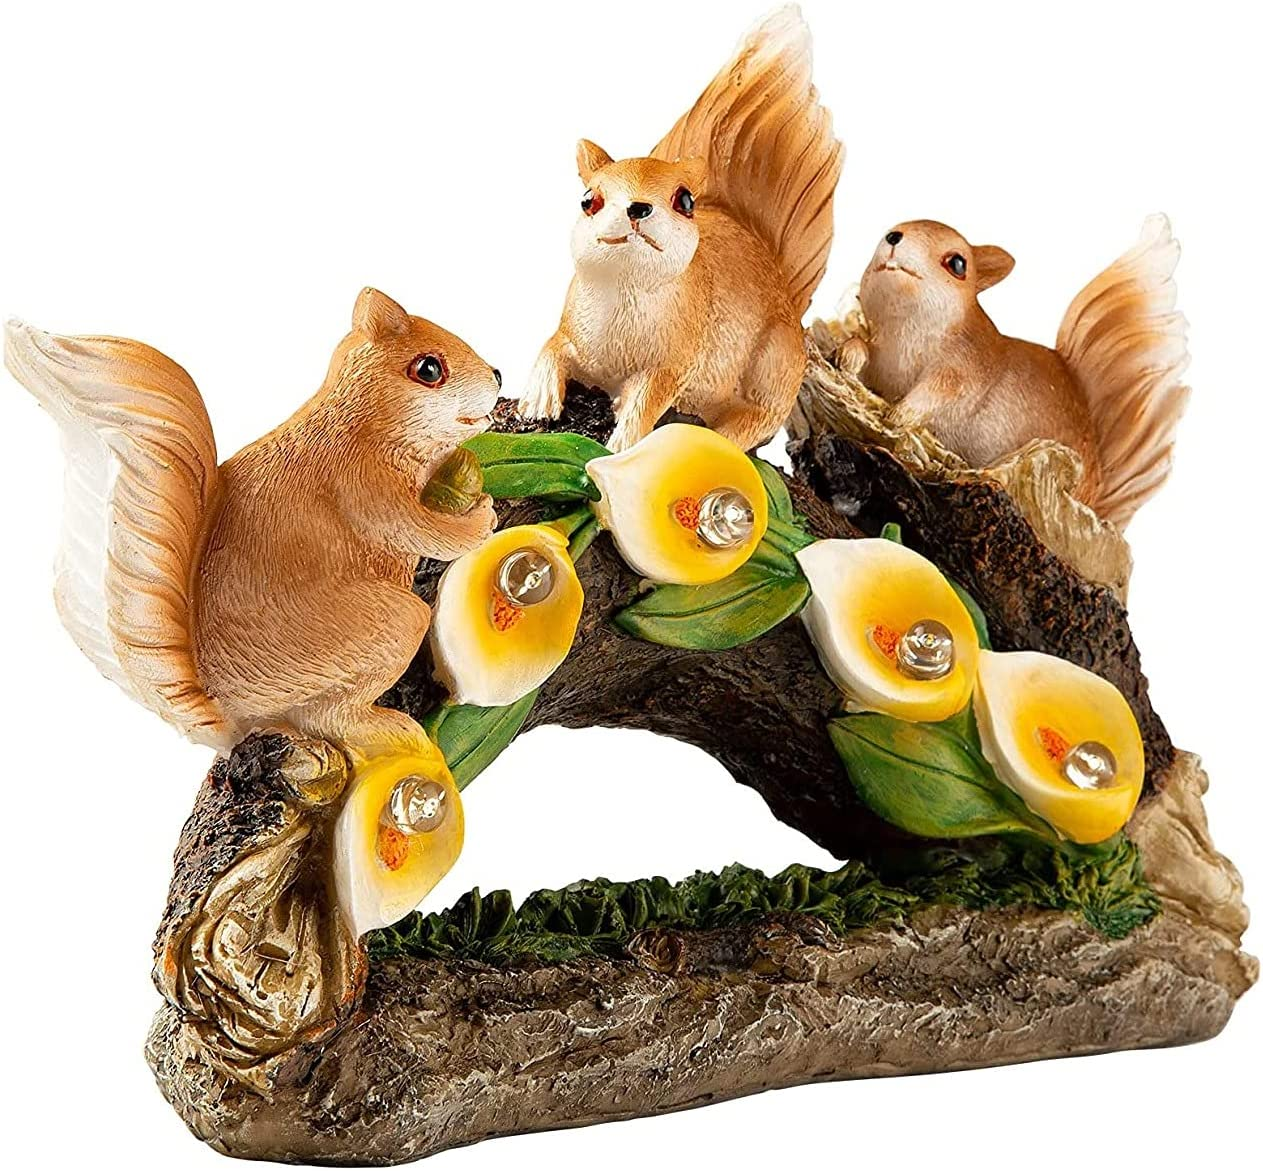 excellence sknonr Squirrel Simulation Garden Solar Selling and selling Statue Lantern Landscape